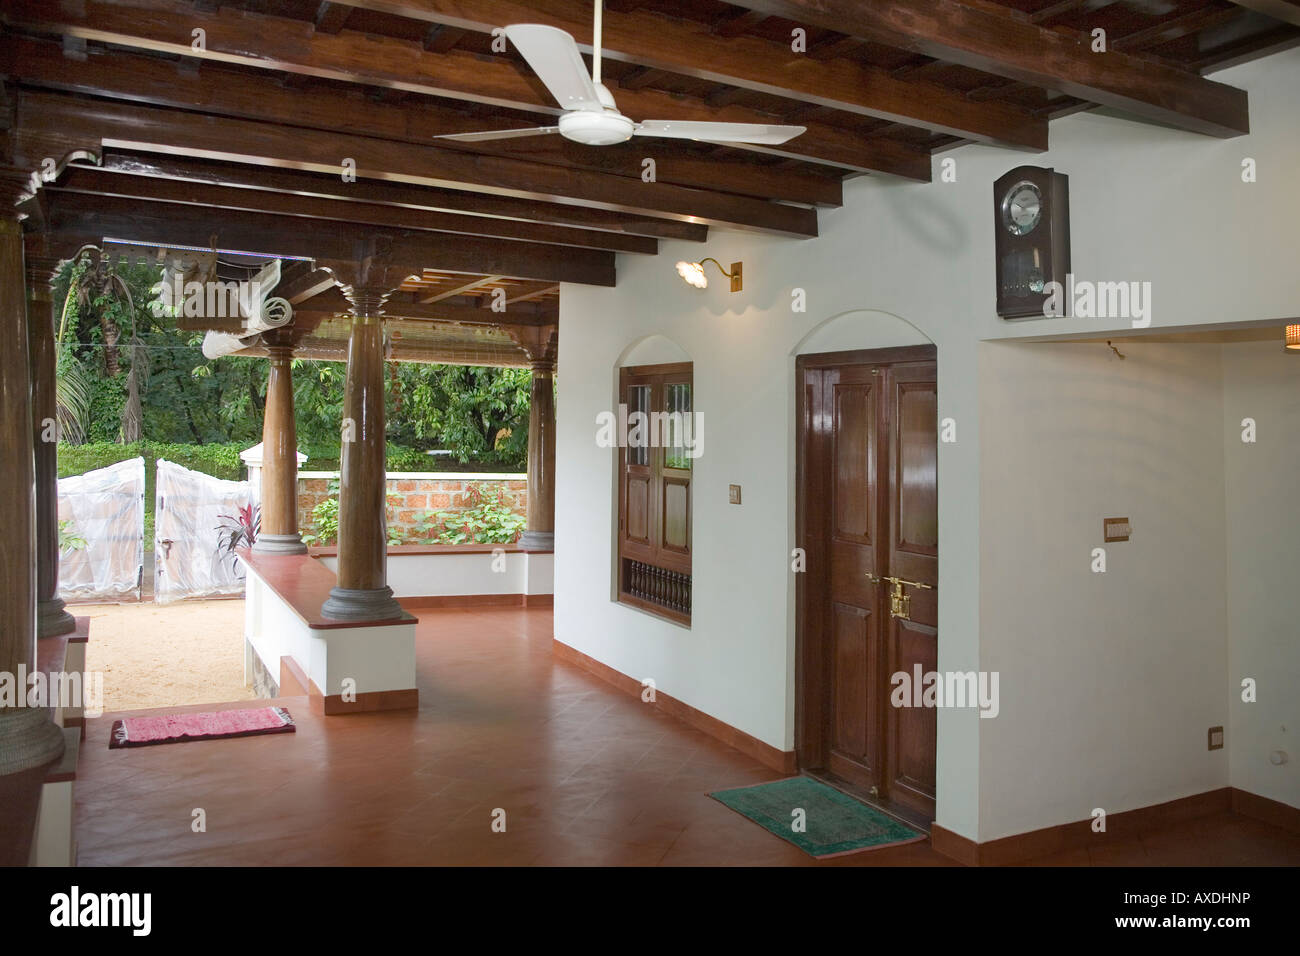 Part of airy verandah of keralite bungalow styled after for Verandah designs in india